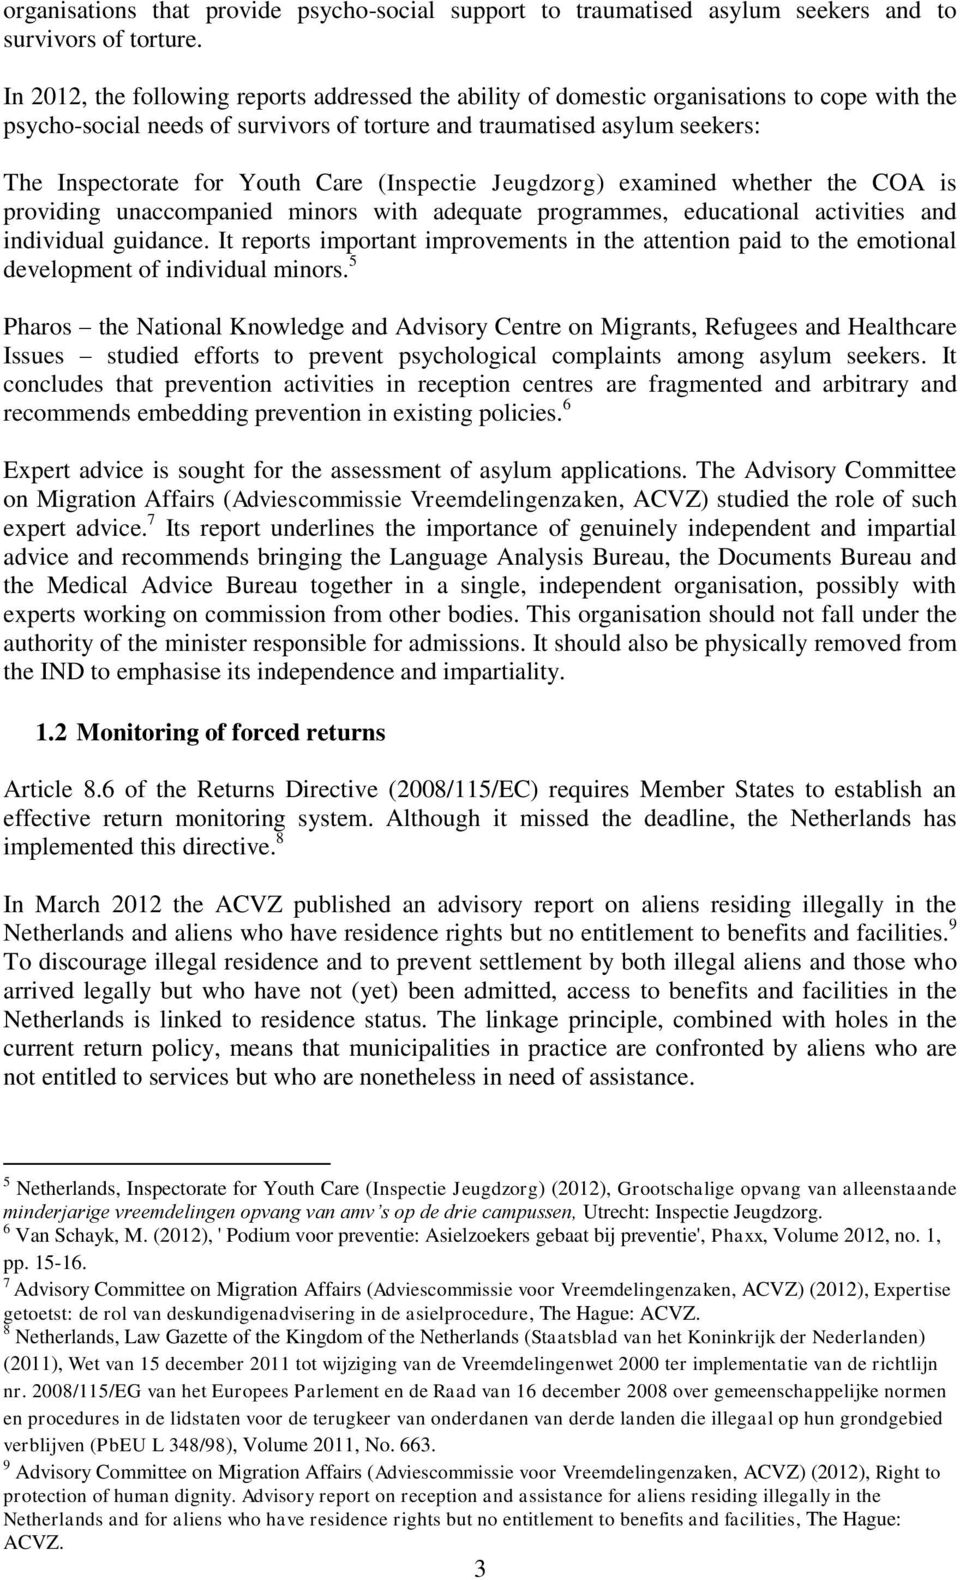 Care (Inspectie Jeugdzorg) examined whether the COA is providing unaccompanied minors with adequate programmes, educational activities and individual guidance.